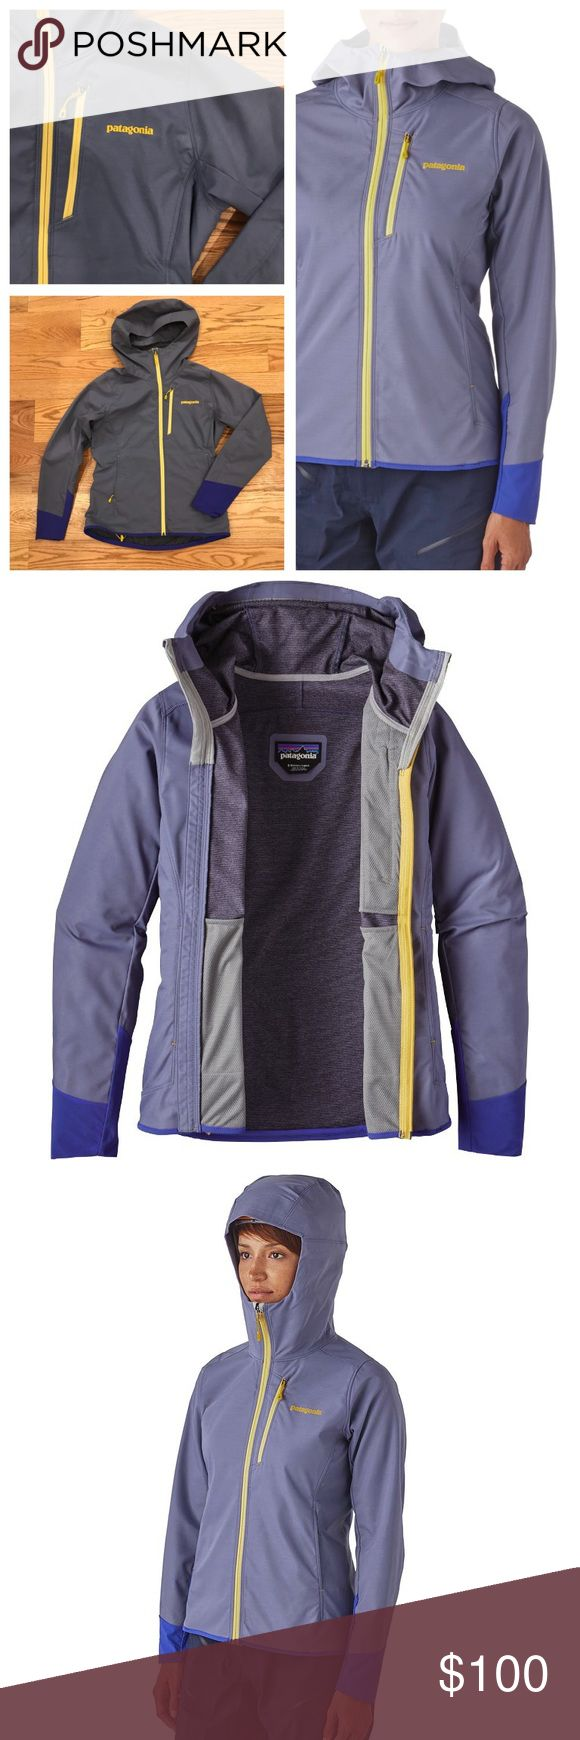 Patagonia Levitation Hoodie Patagonia Levitation Hoodie in Lupine. Size small. The Patagonia New Levitation Hoody soft shell should top your packing list, made with a tough-but-lightweight double weave stretch-woven fabric that breathes, resists wind and staves off precip with a DWR (durable water repellent) finish. laminated visor pulls easily on or off your helmet at belays, minimalist detailing includes our stretchy Variable Conditions Cuffs, which integrate cleanly with your climbing…